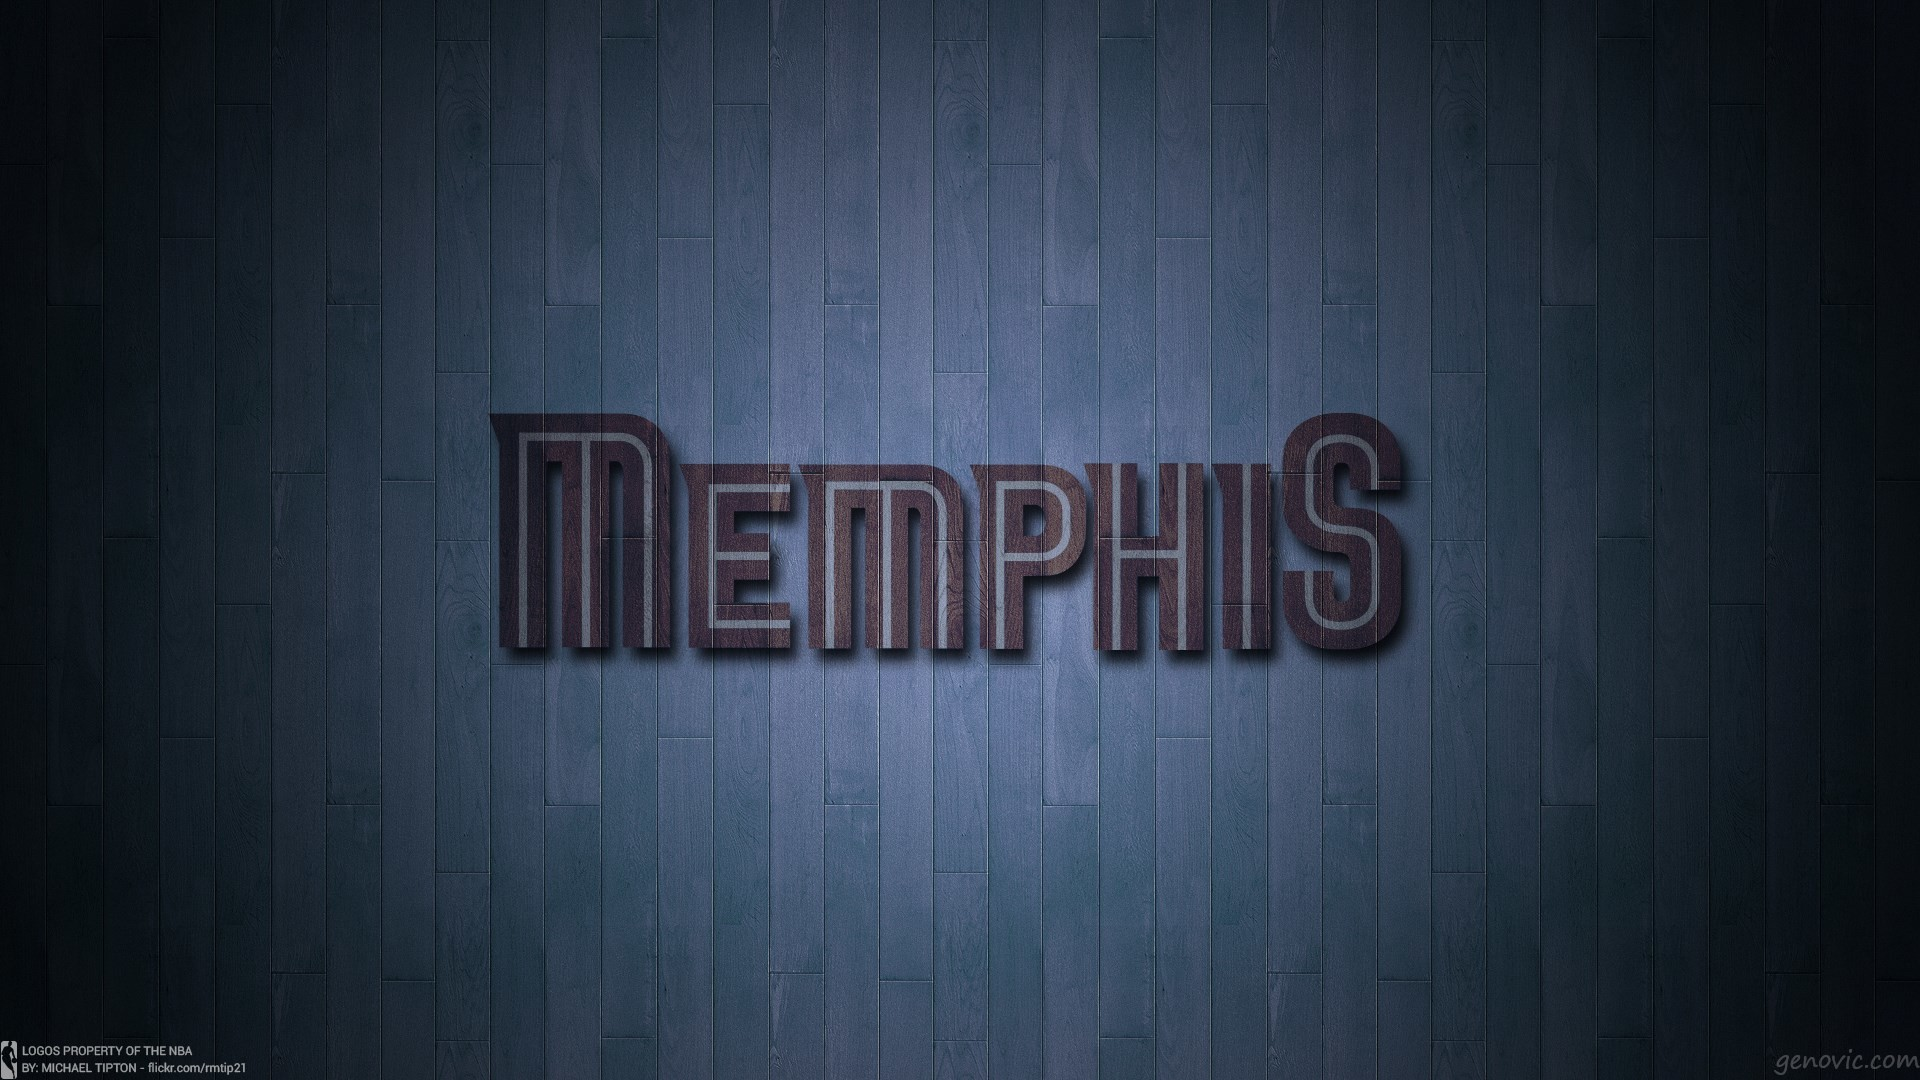 1920x1080 HD Widescreen Creative Memphis Grizzlies Pictures,  px, Maria  Carbaugh